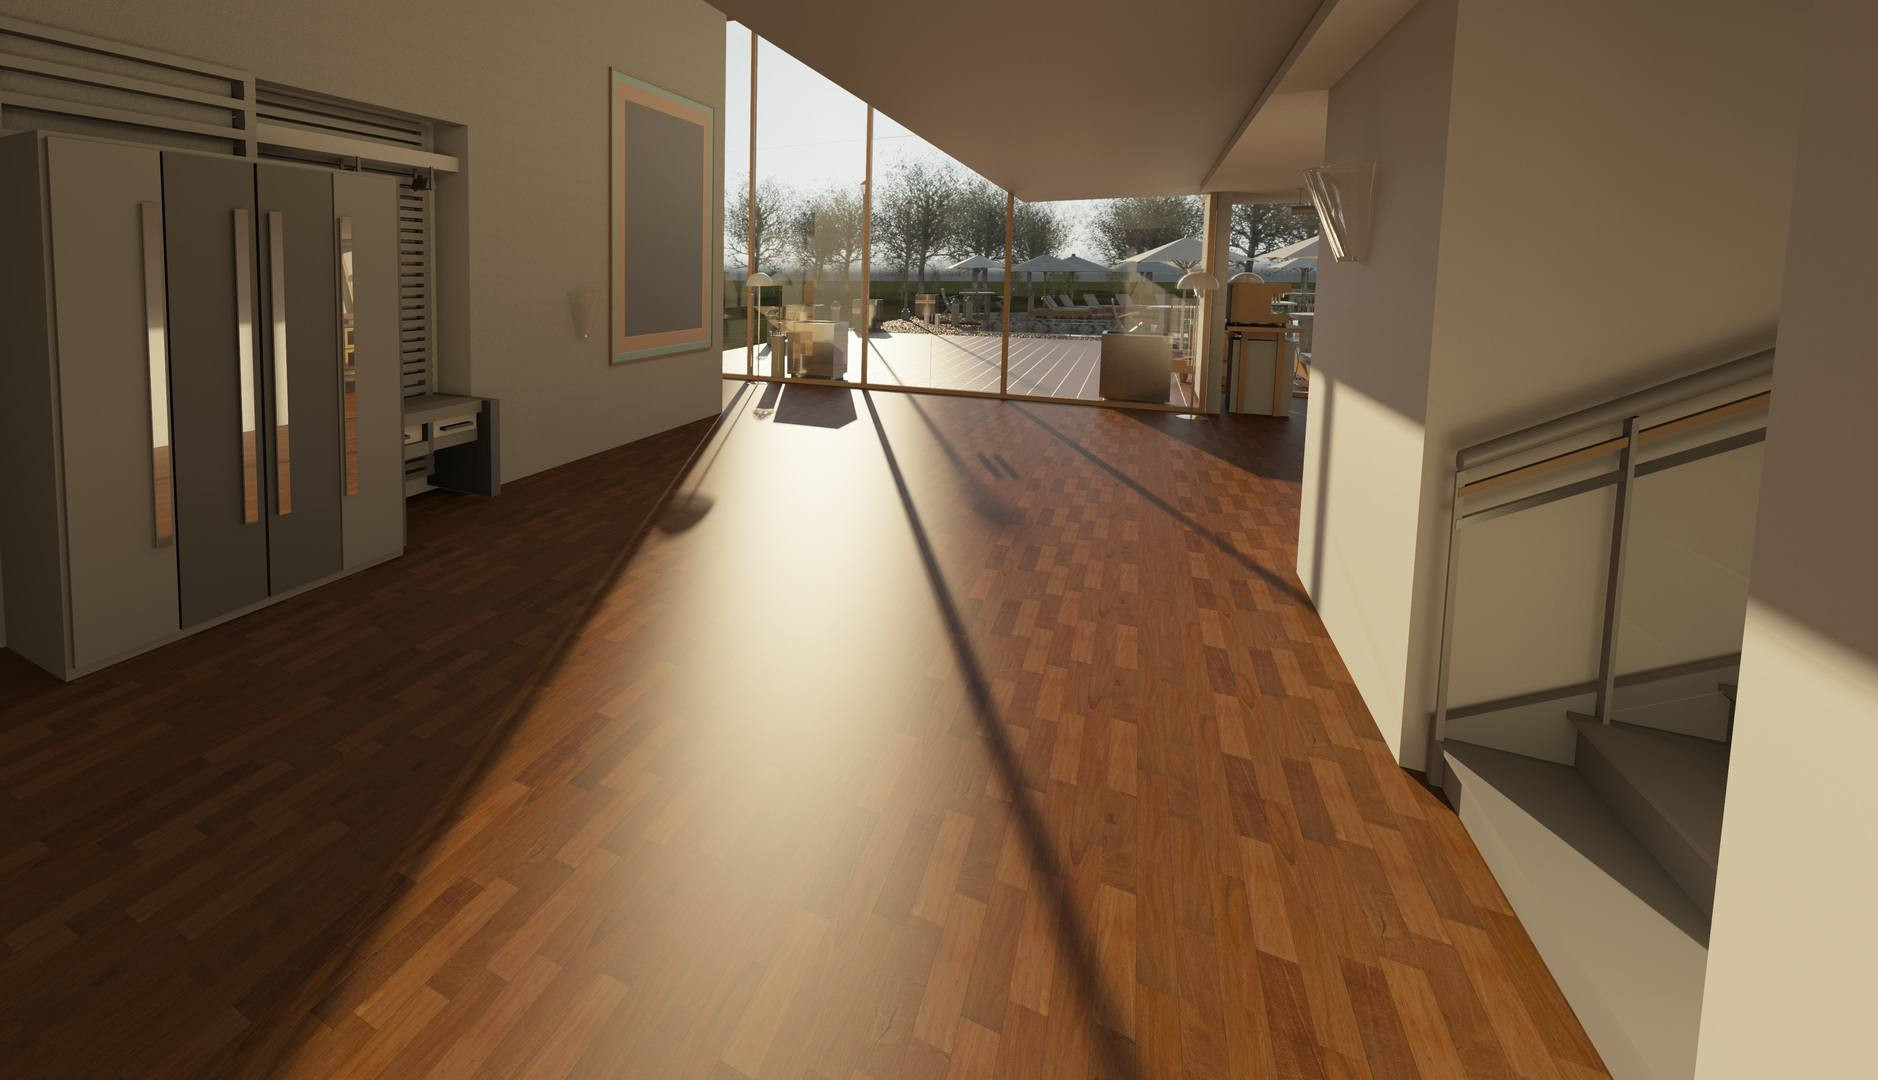 hardwood floor care system of common flooring types currently used in renovation and building in architecture wood house floor interior window 917178 pxhere com 5ba27a2cc9e77c00503b27b9